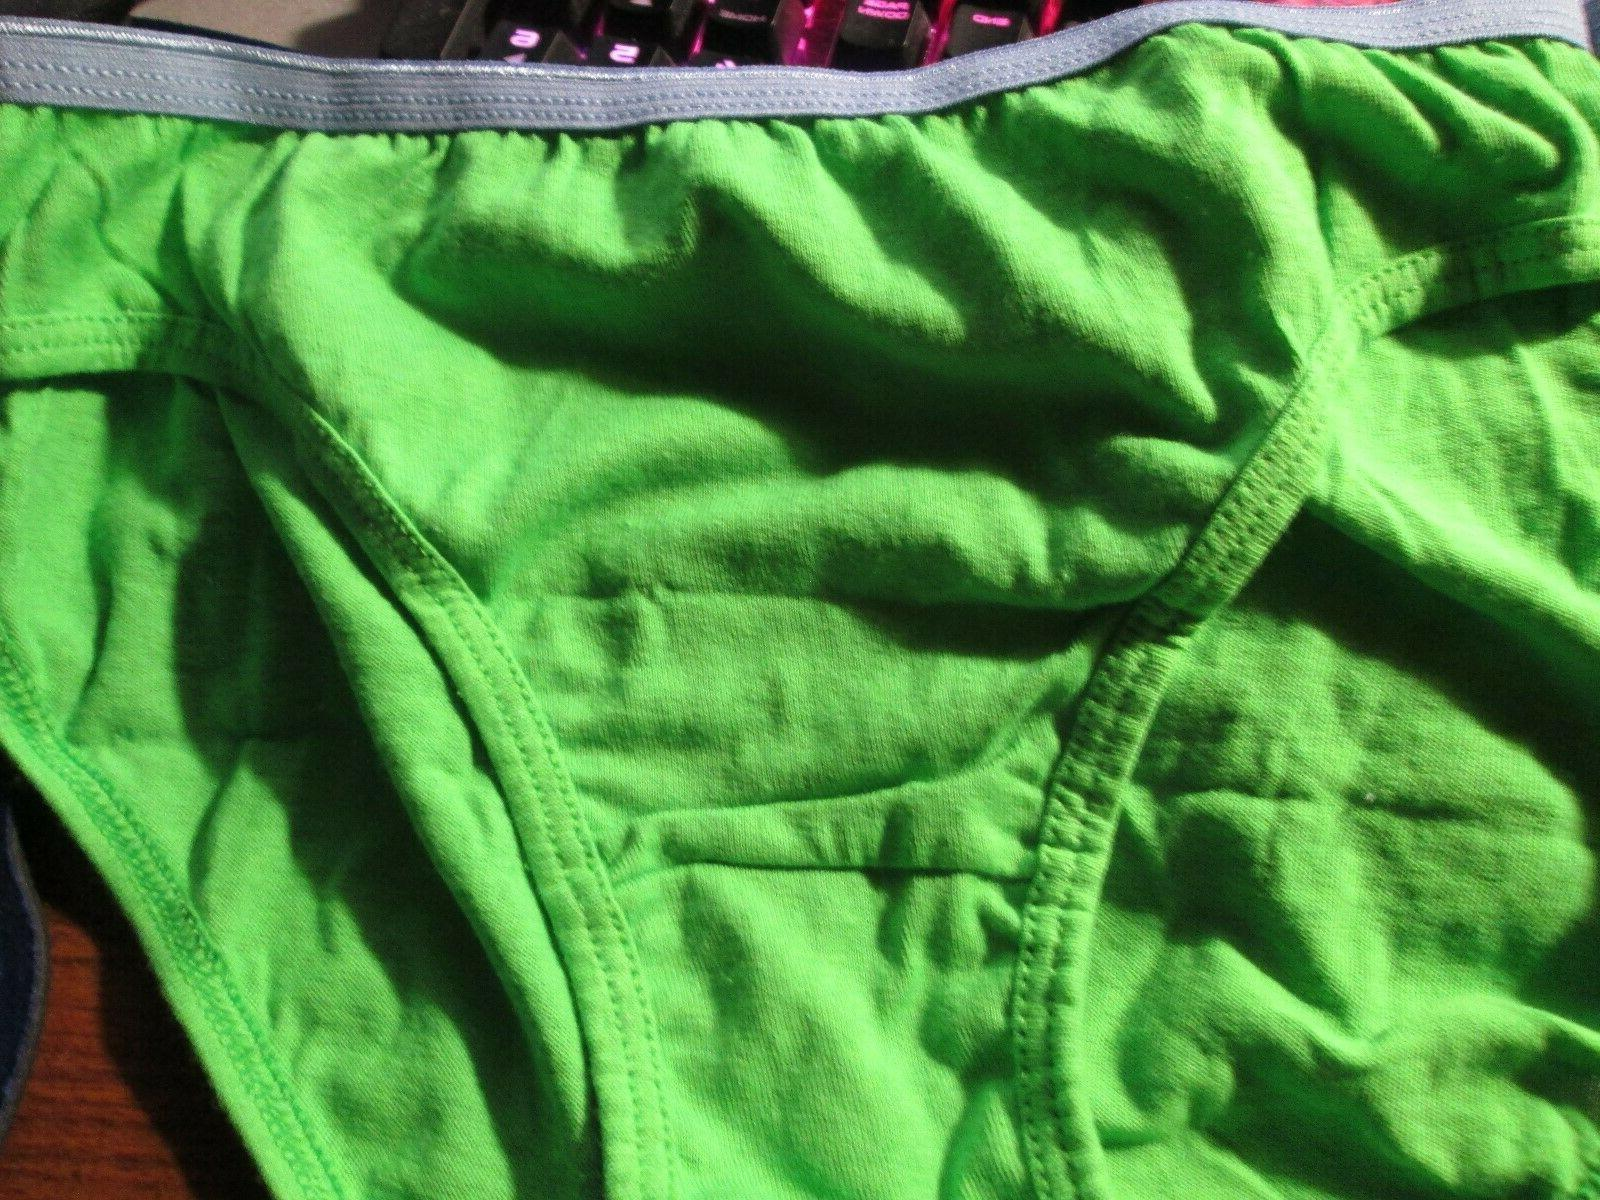 New Girls Pair Size 16 Rock/Shades/Green